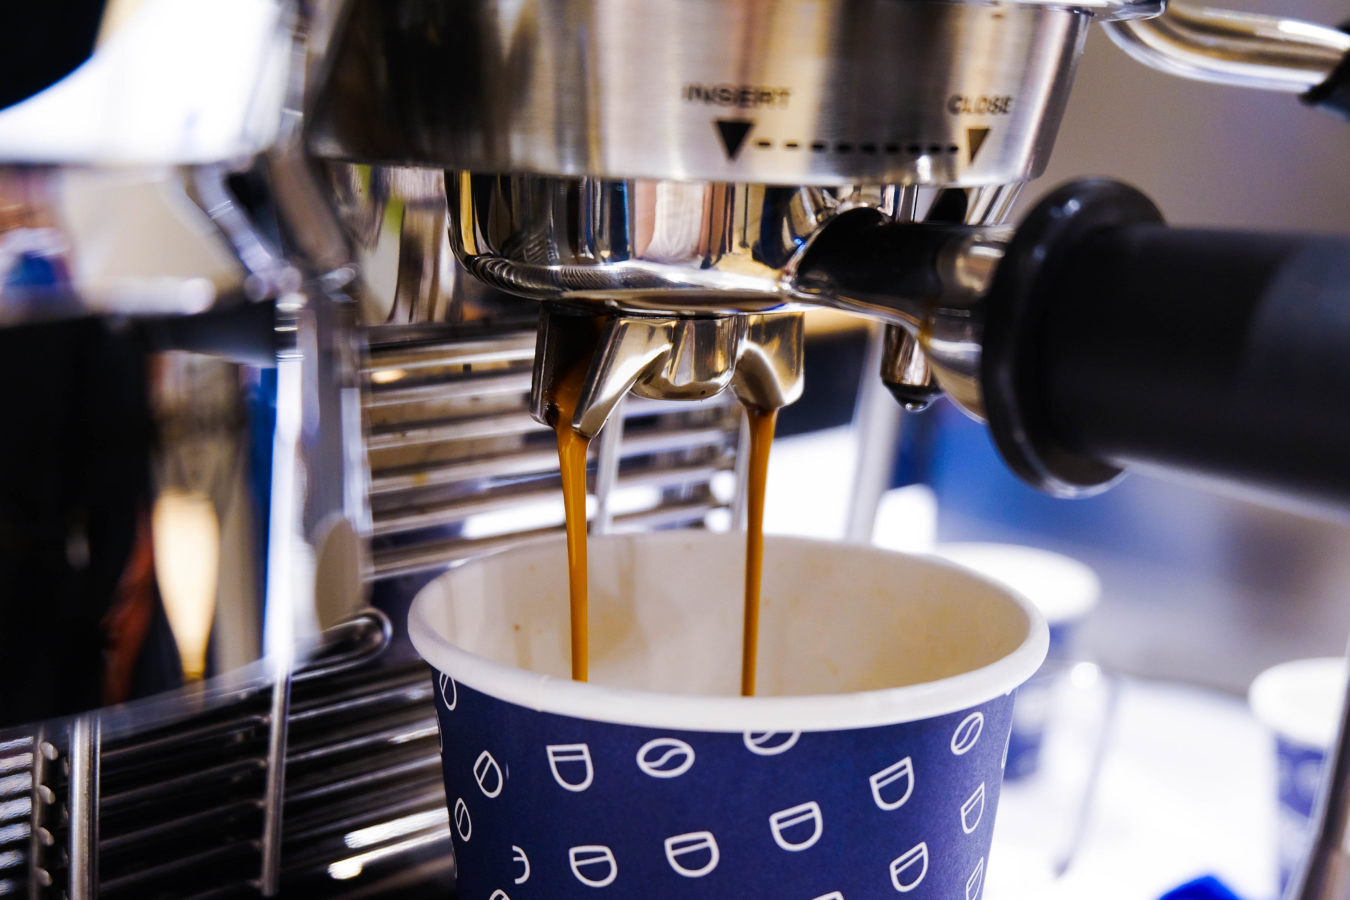 The De'Longhi Coffee Lounge is an aromatic experience you won't want to miss